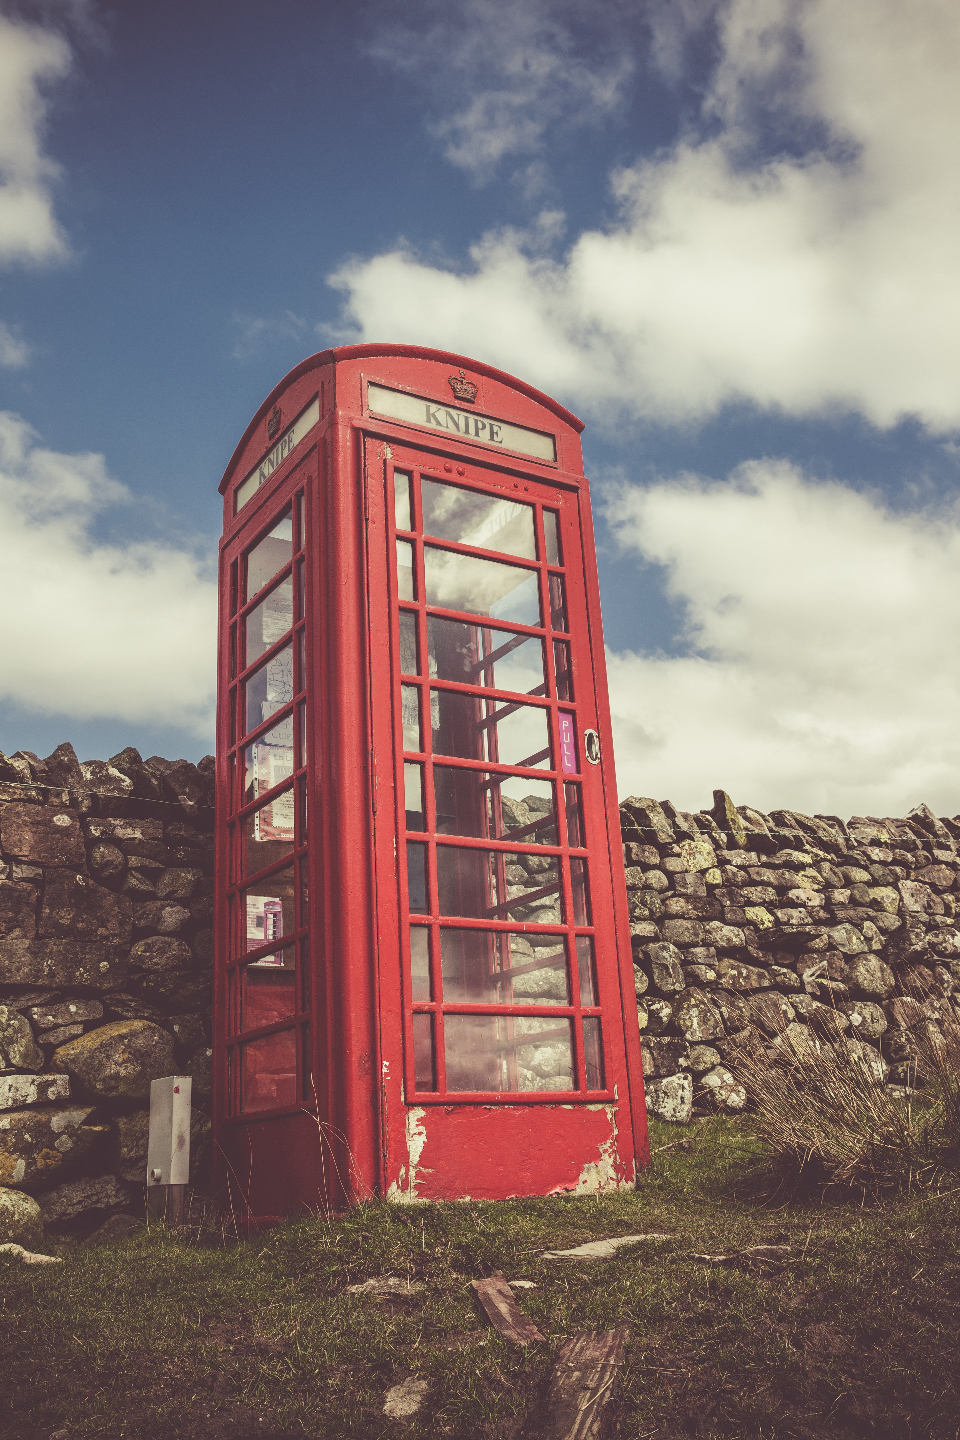 vintage red phoebox phone telephone england uk stone wall country clouds